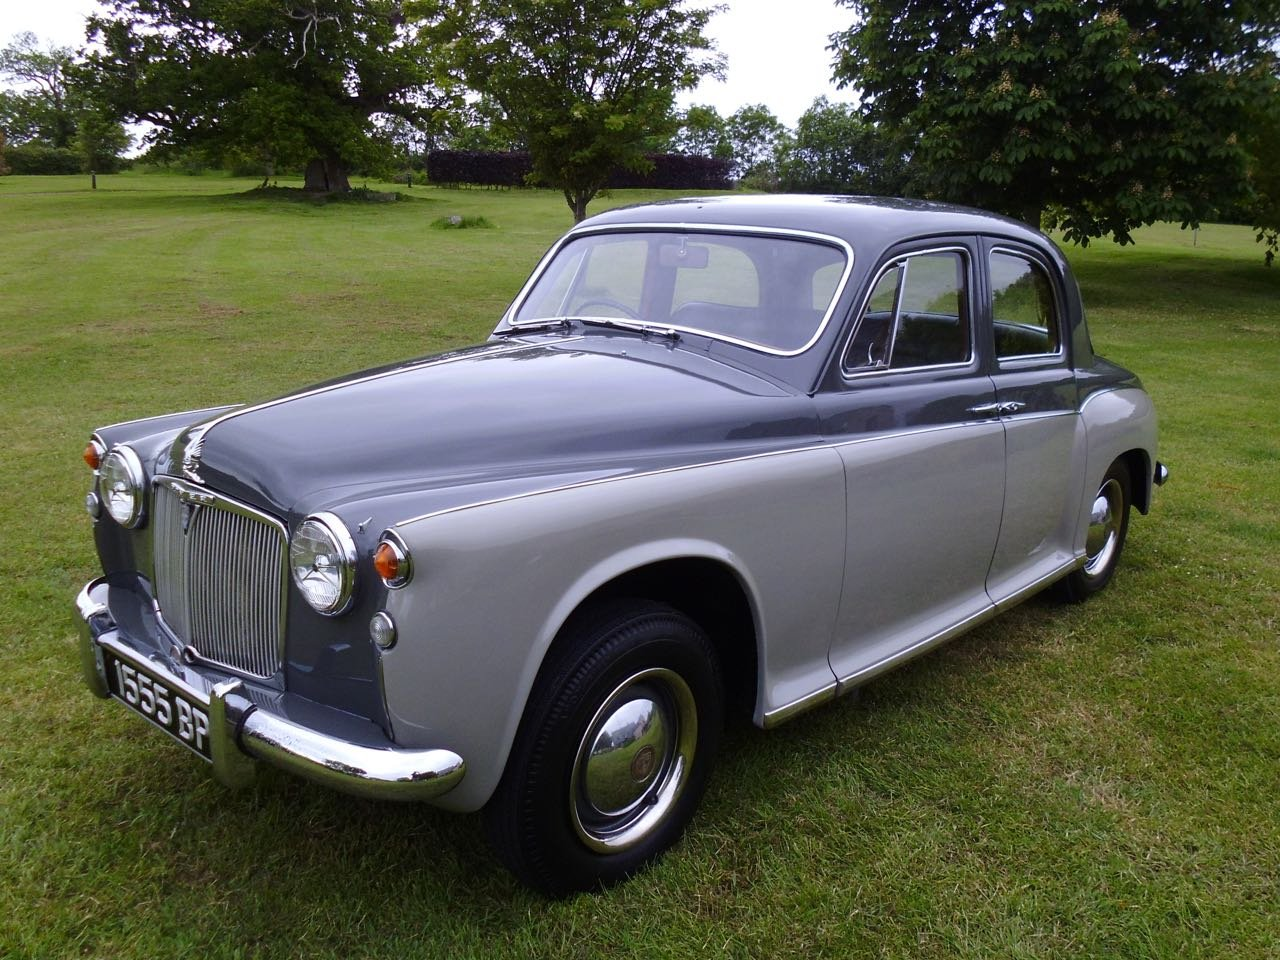 1958 Rover P4 75 six cylinder saloon For Sale (picture 1 of 6)